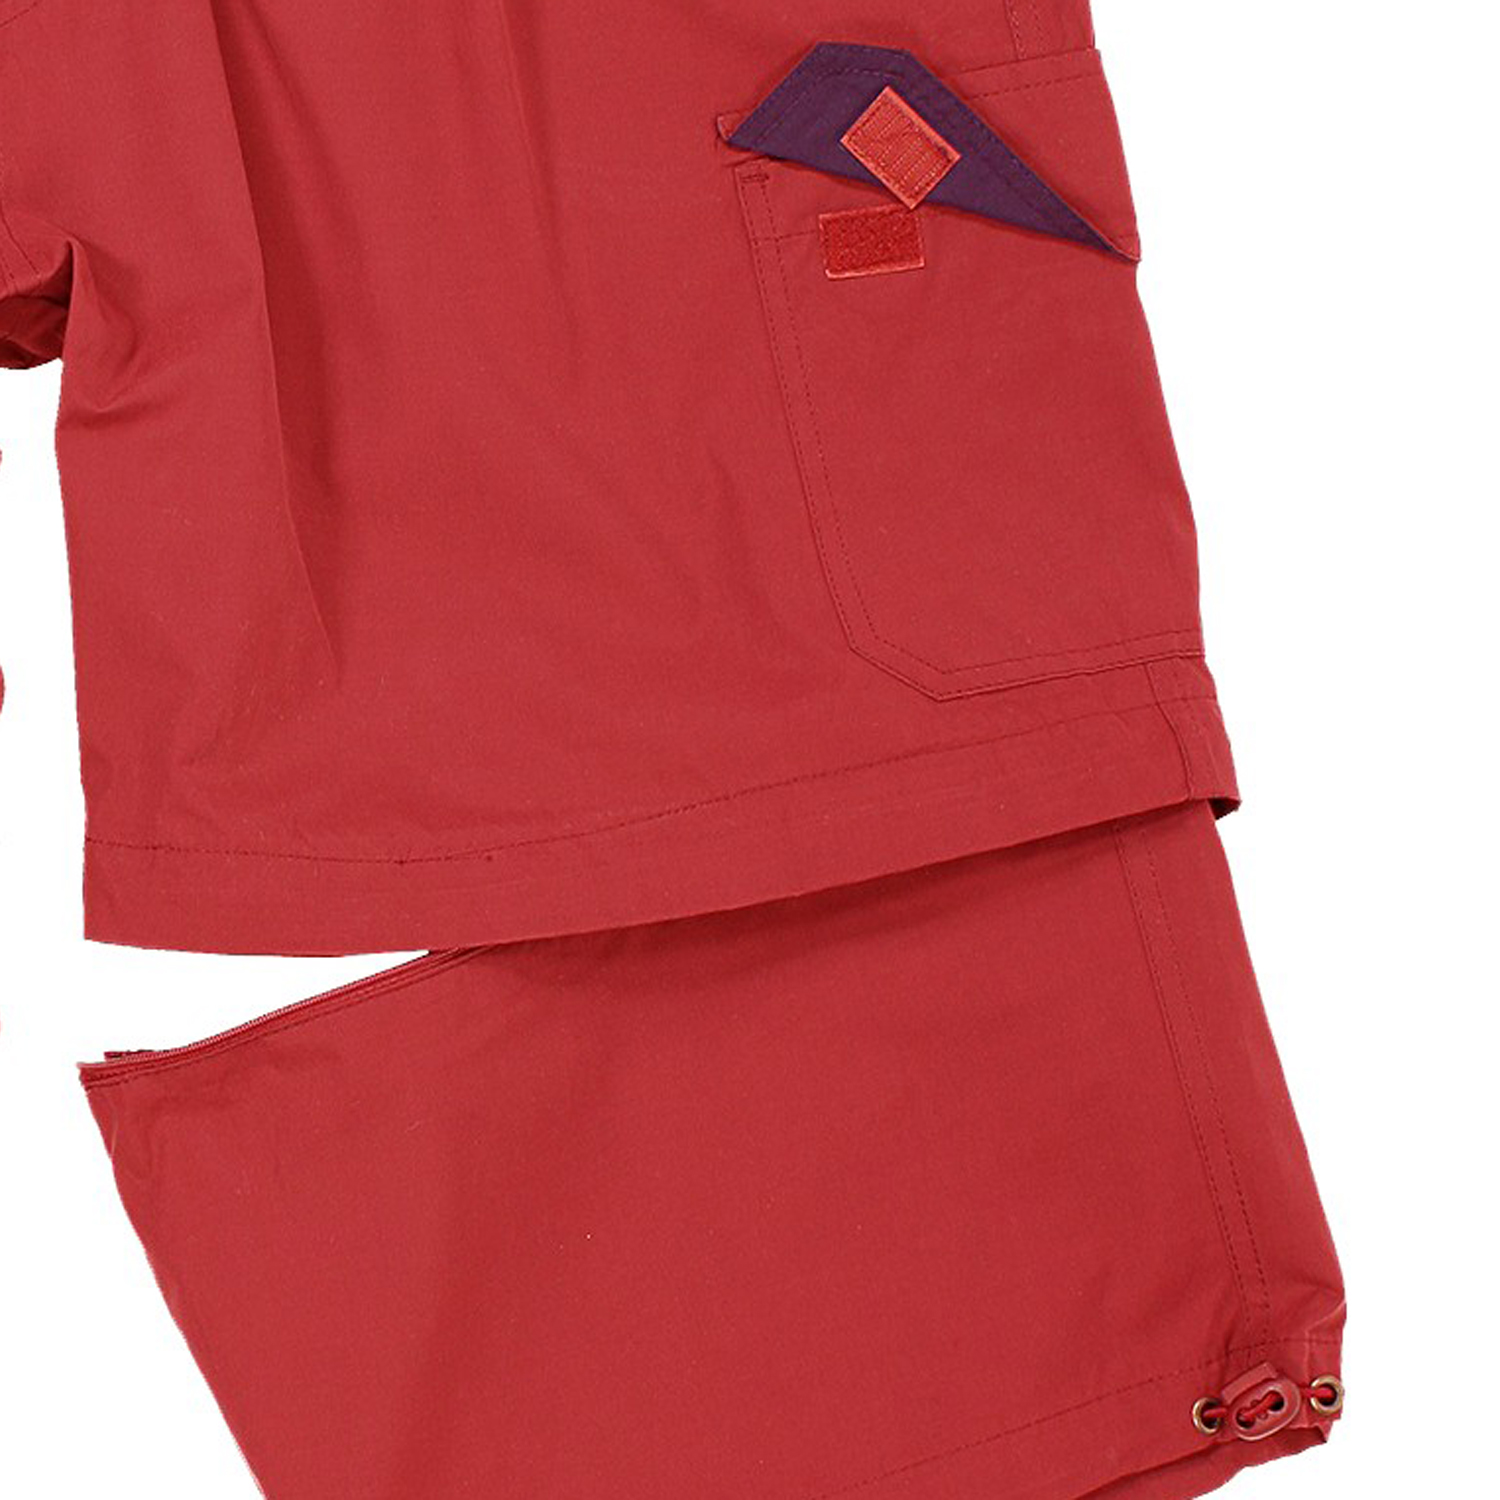 Detail Image to Zip-off-cargo-bermuda in red by Abraxas in large sizes up to 10XL